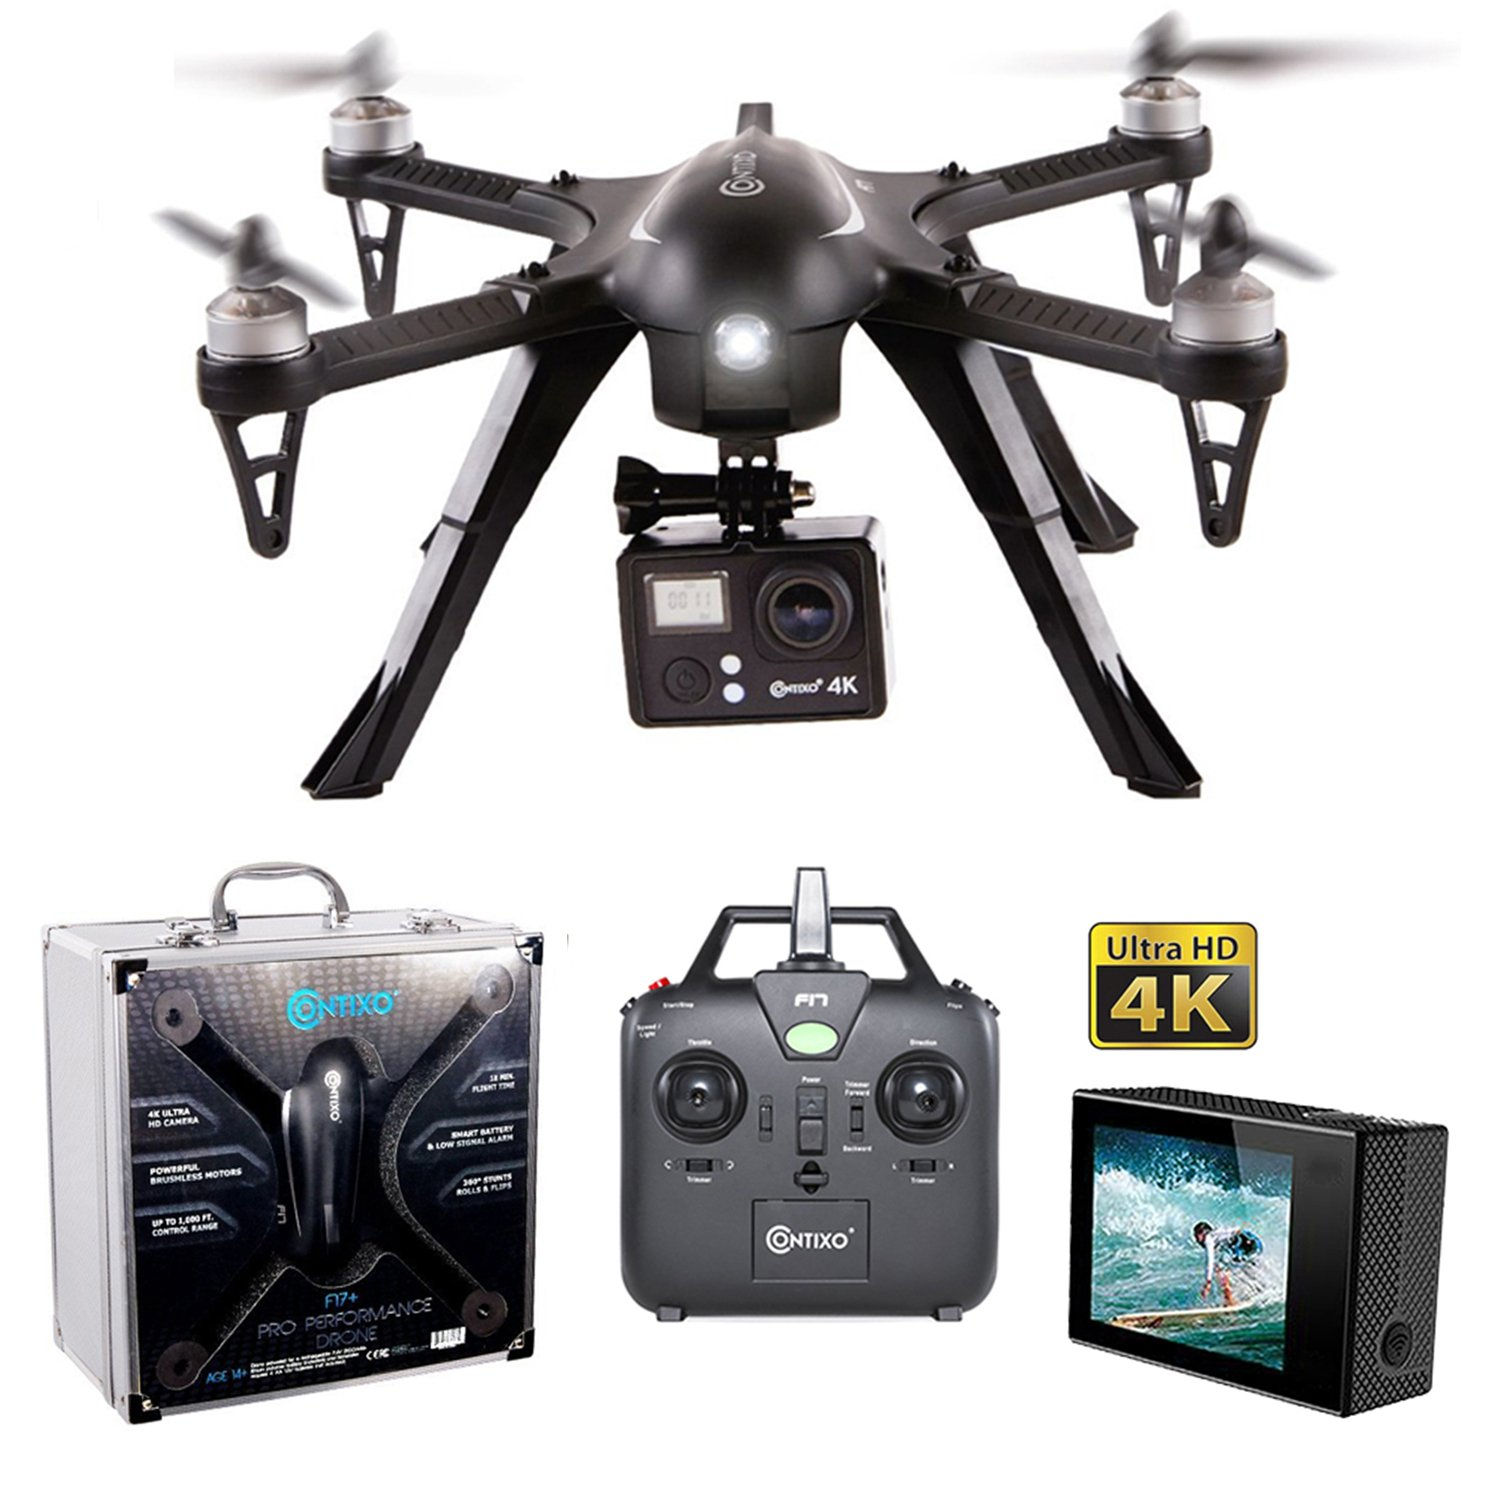 Contixo F17+ RC Quadcopter Photography Drone 4K Ultra HD Camera 16MP, Brushless Motors, 1 High Capacity Battery, Supports GoPro Hero Cameras, Alum Hard Case by Contixo